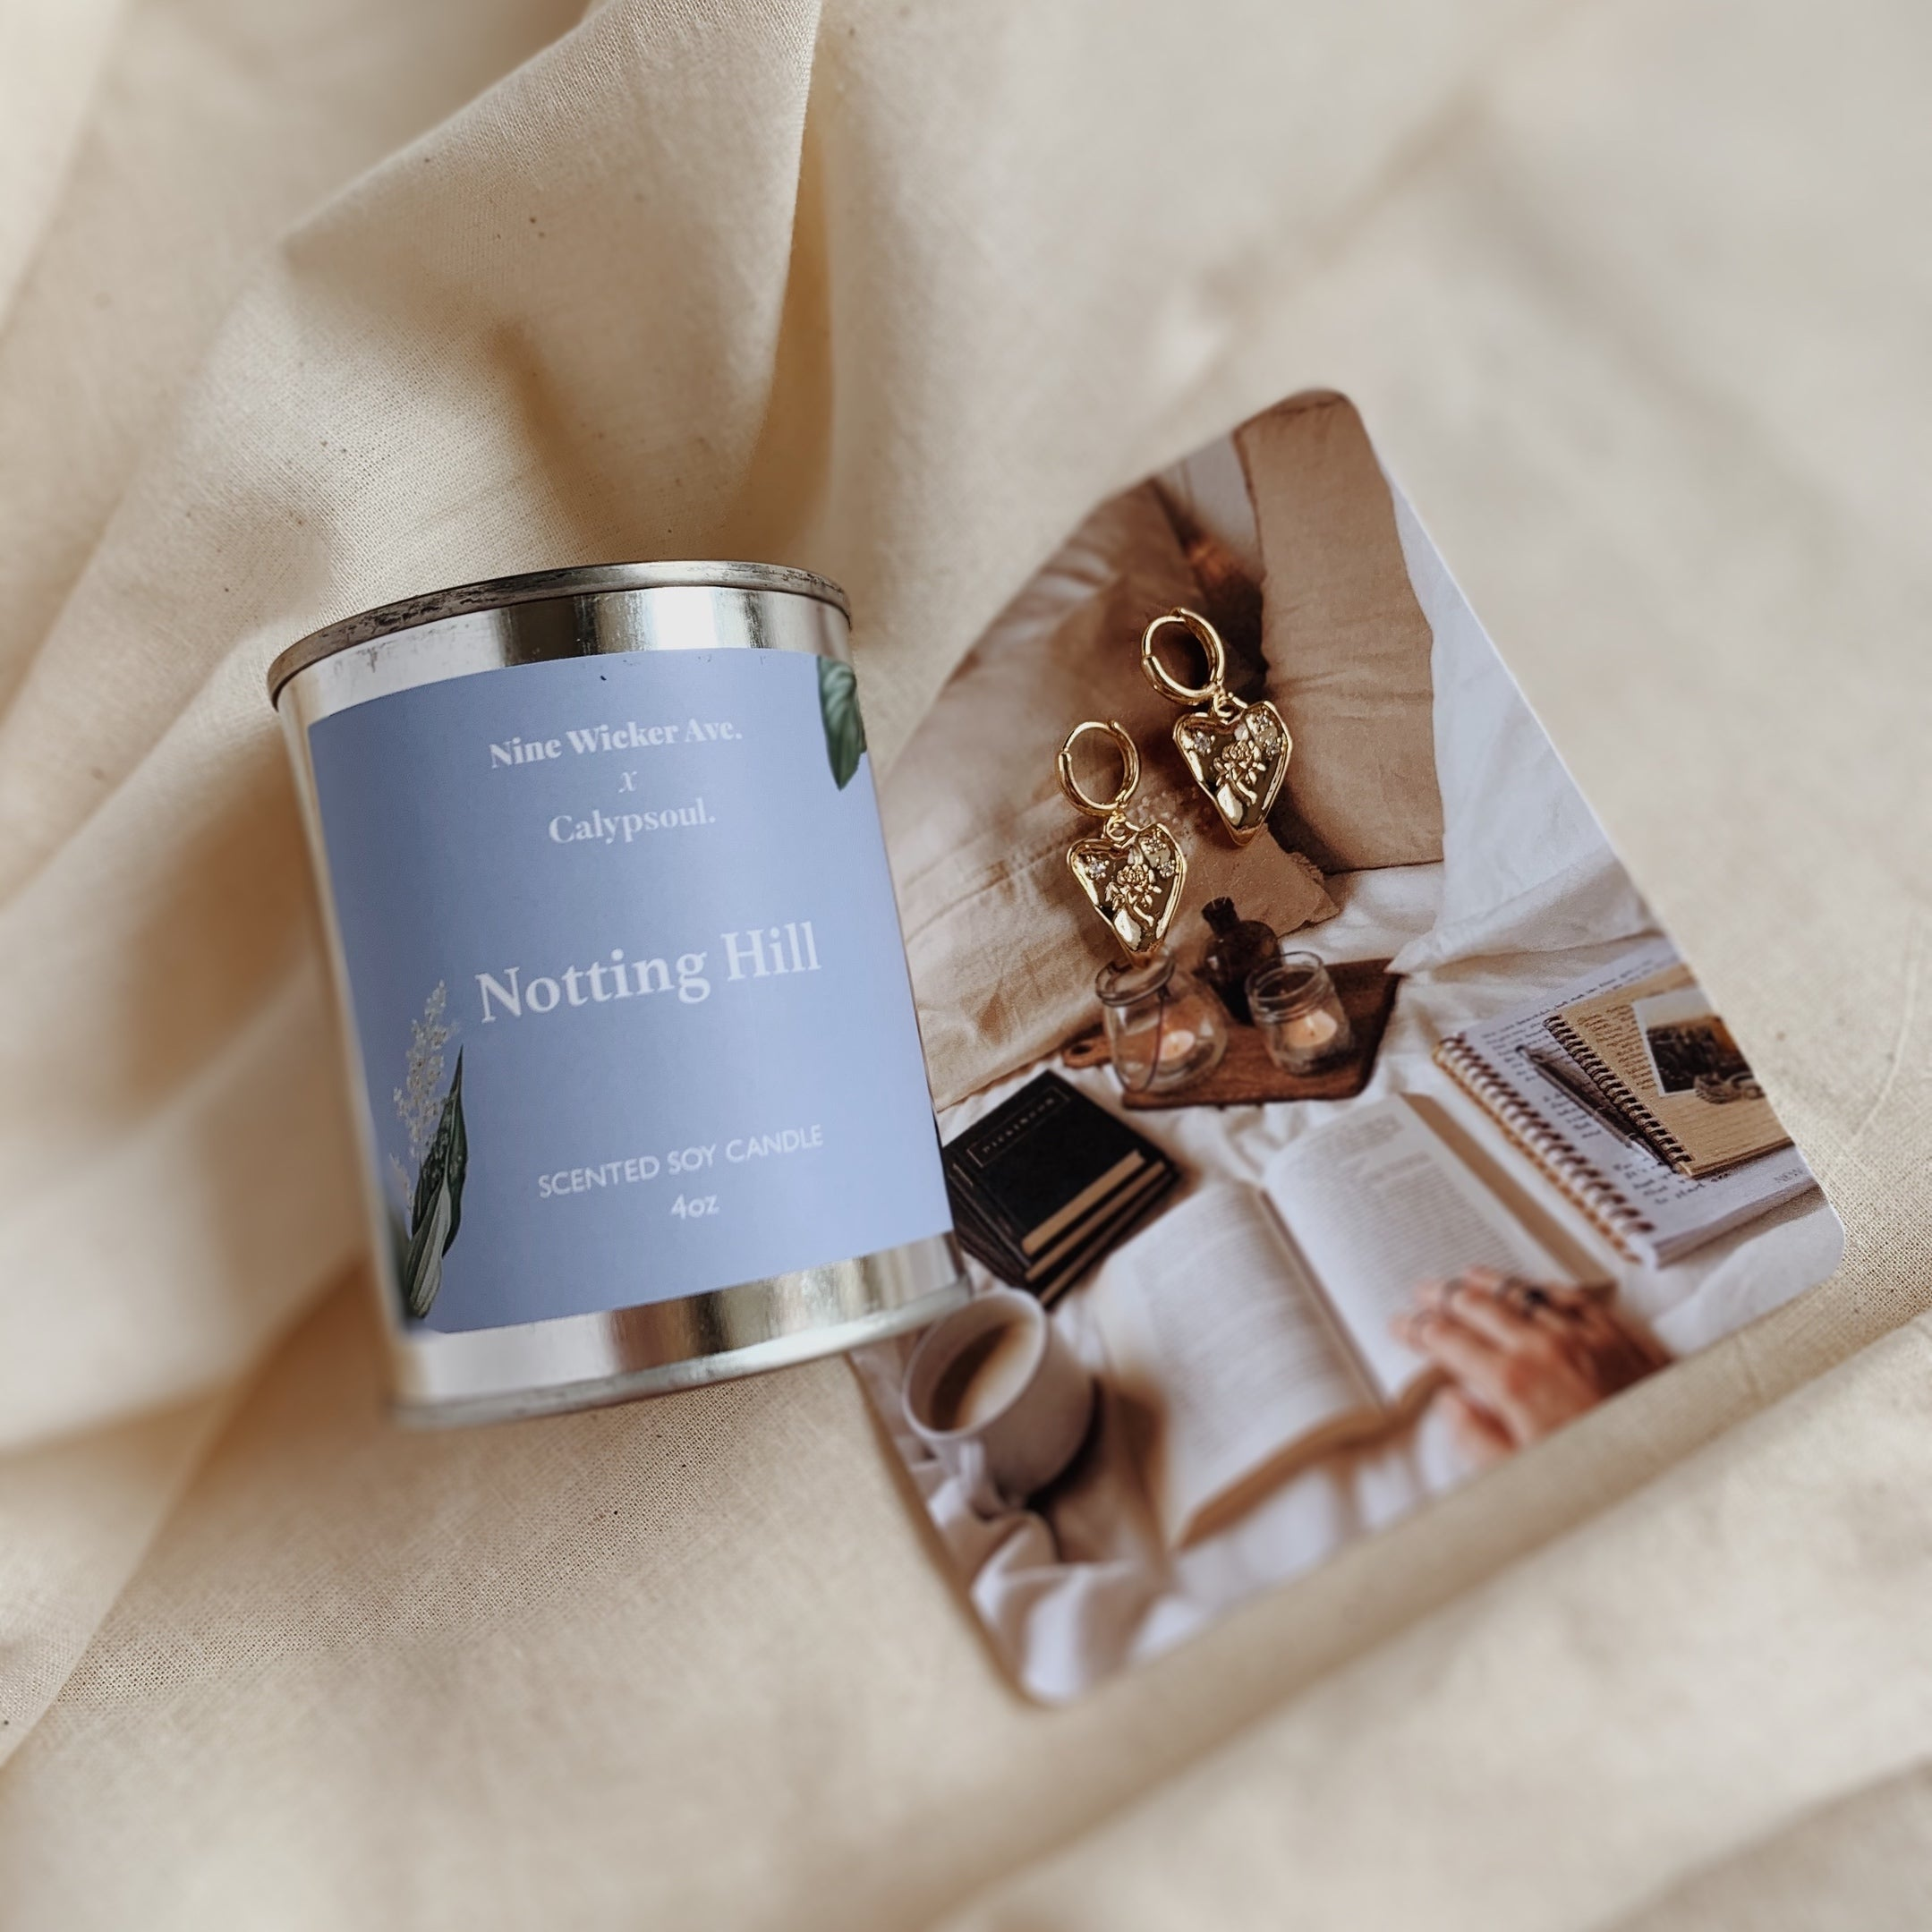 [Calypsoul x NWA] Notting Hill Candle Bundle with Isla Heart Huggies